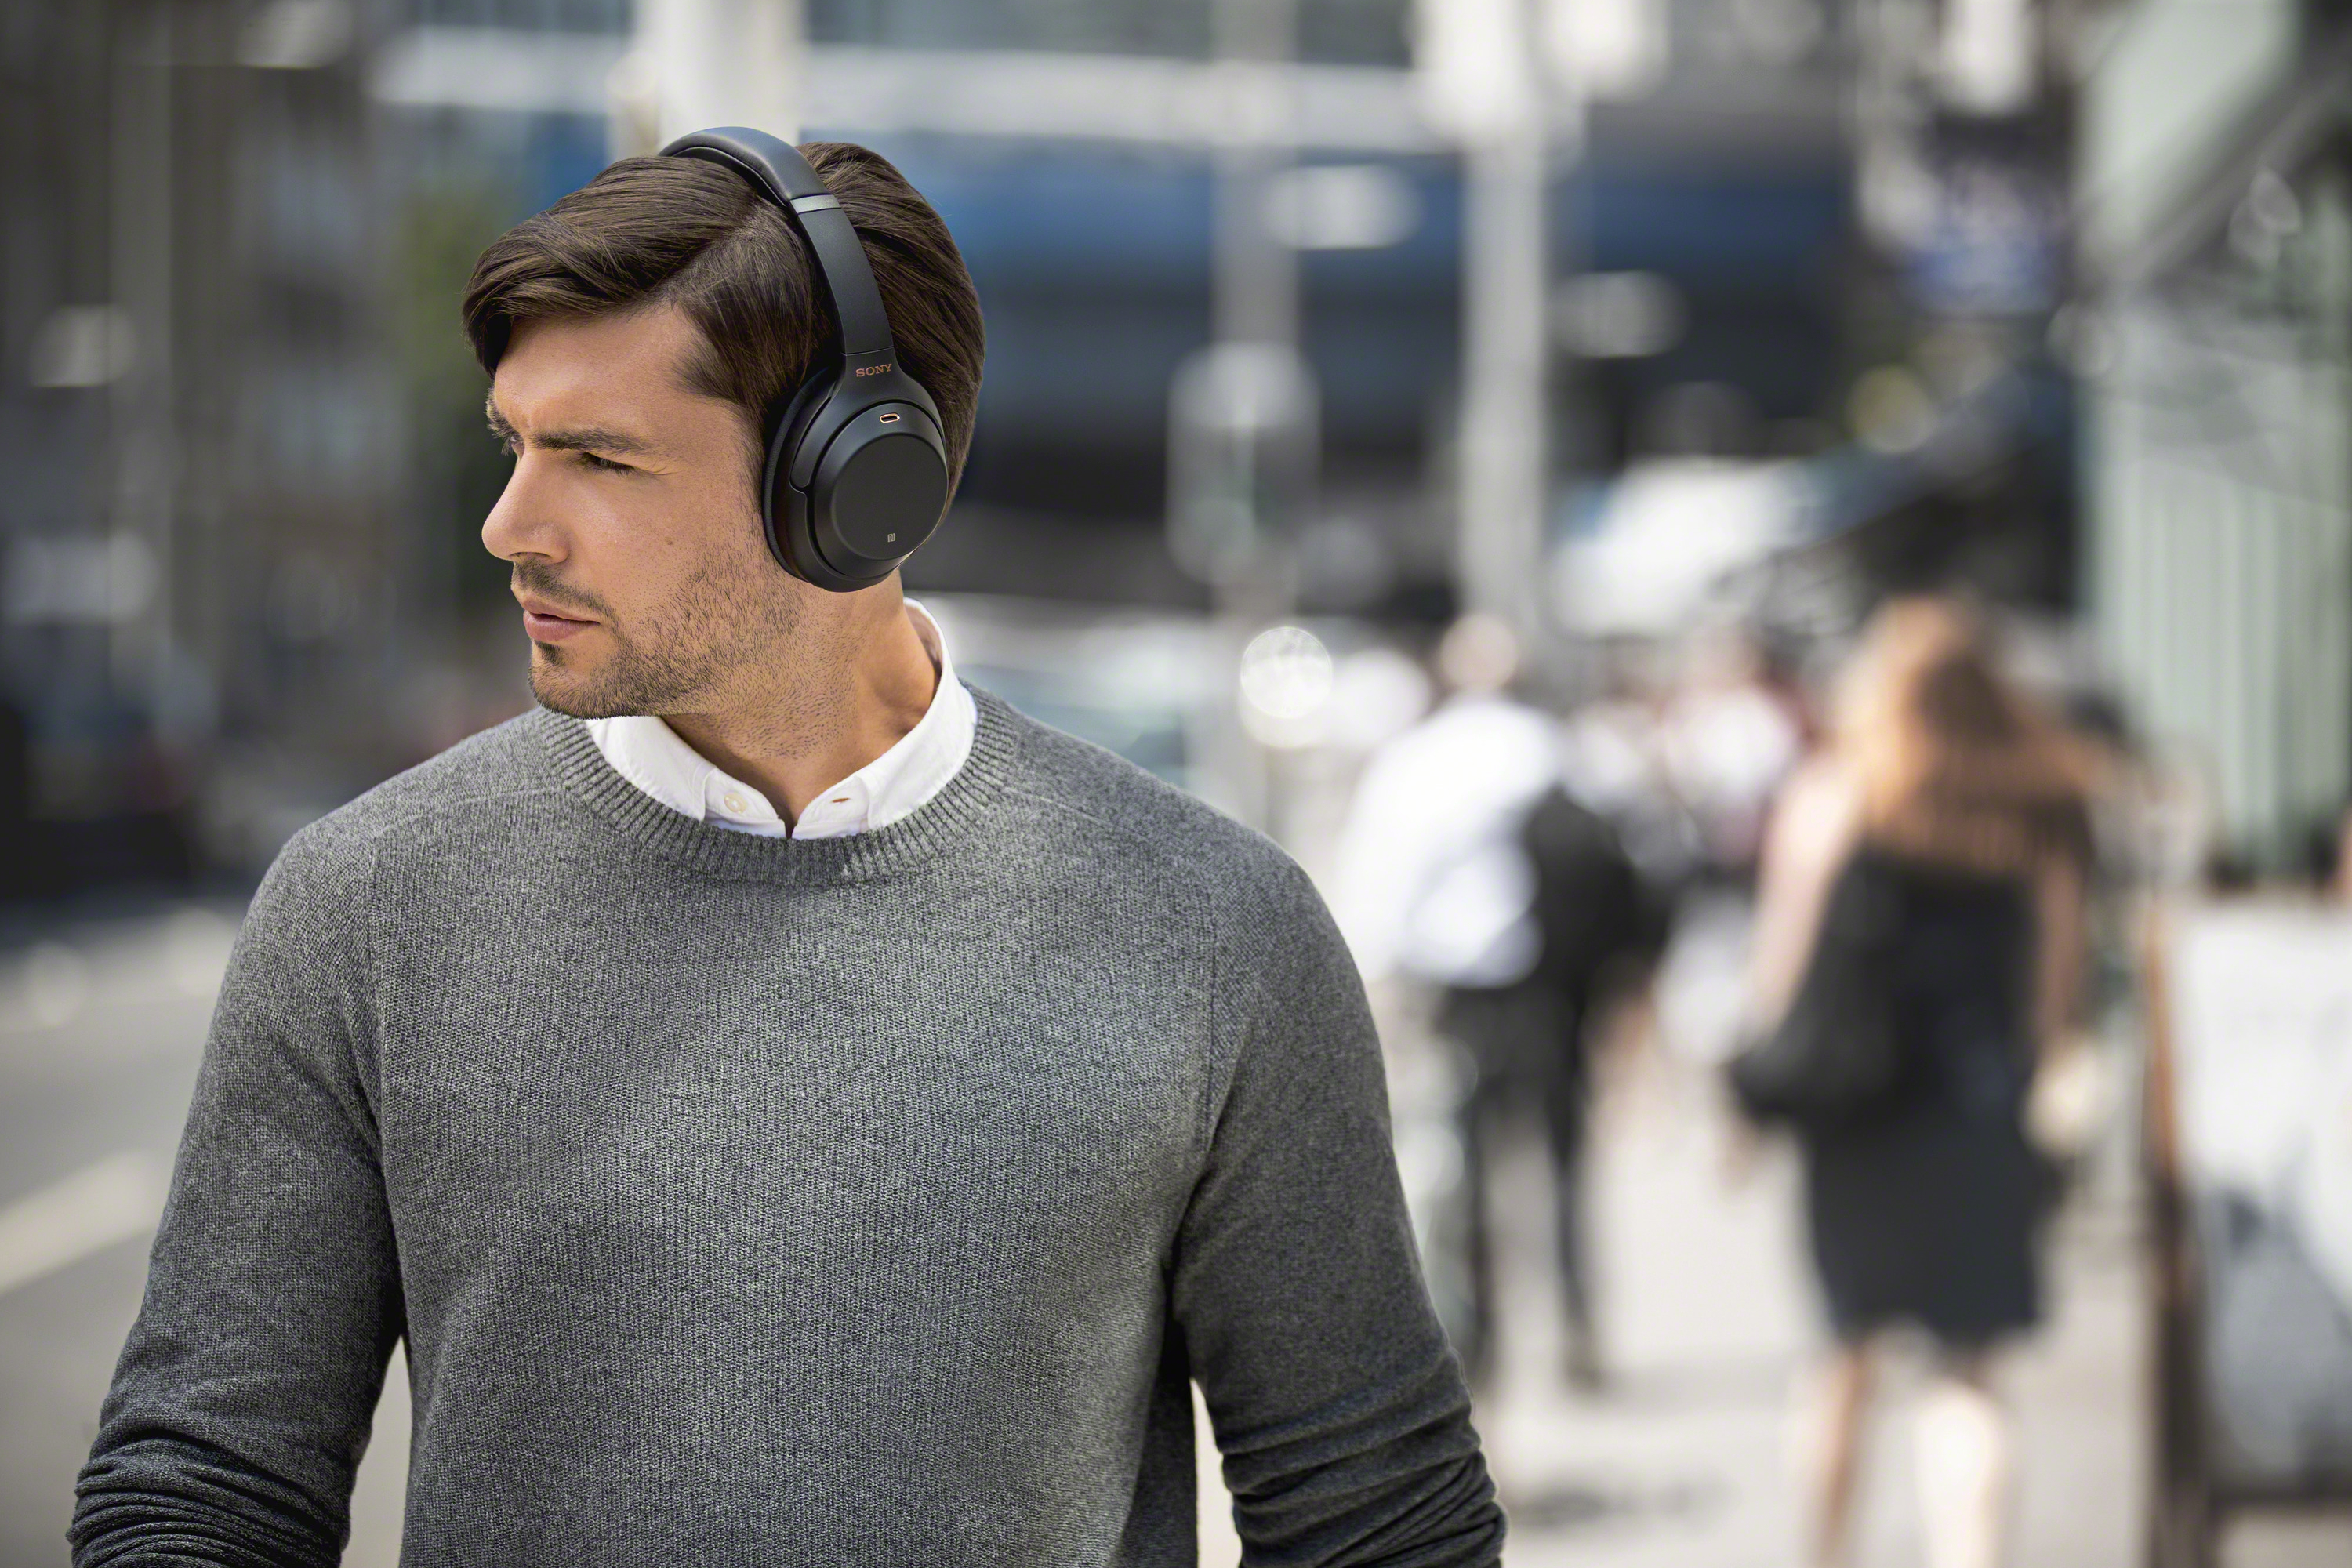 Sony-WH-1000XM3-Wireless-Noise-Canceling-Over-Ear-Headphones-w-Google-Assistant thumbnail 9